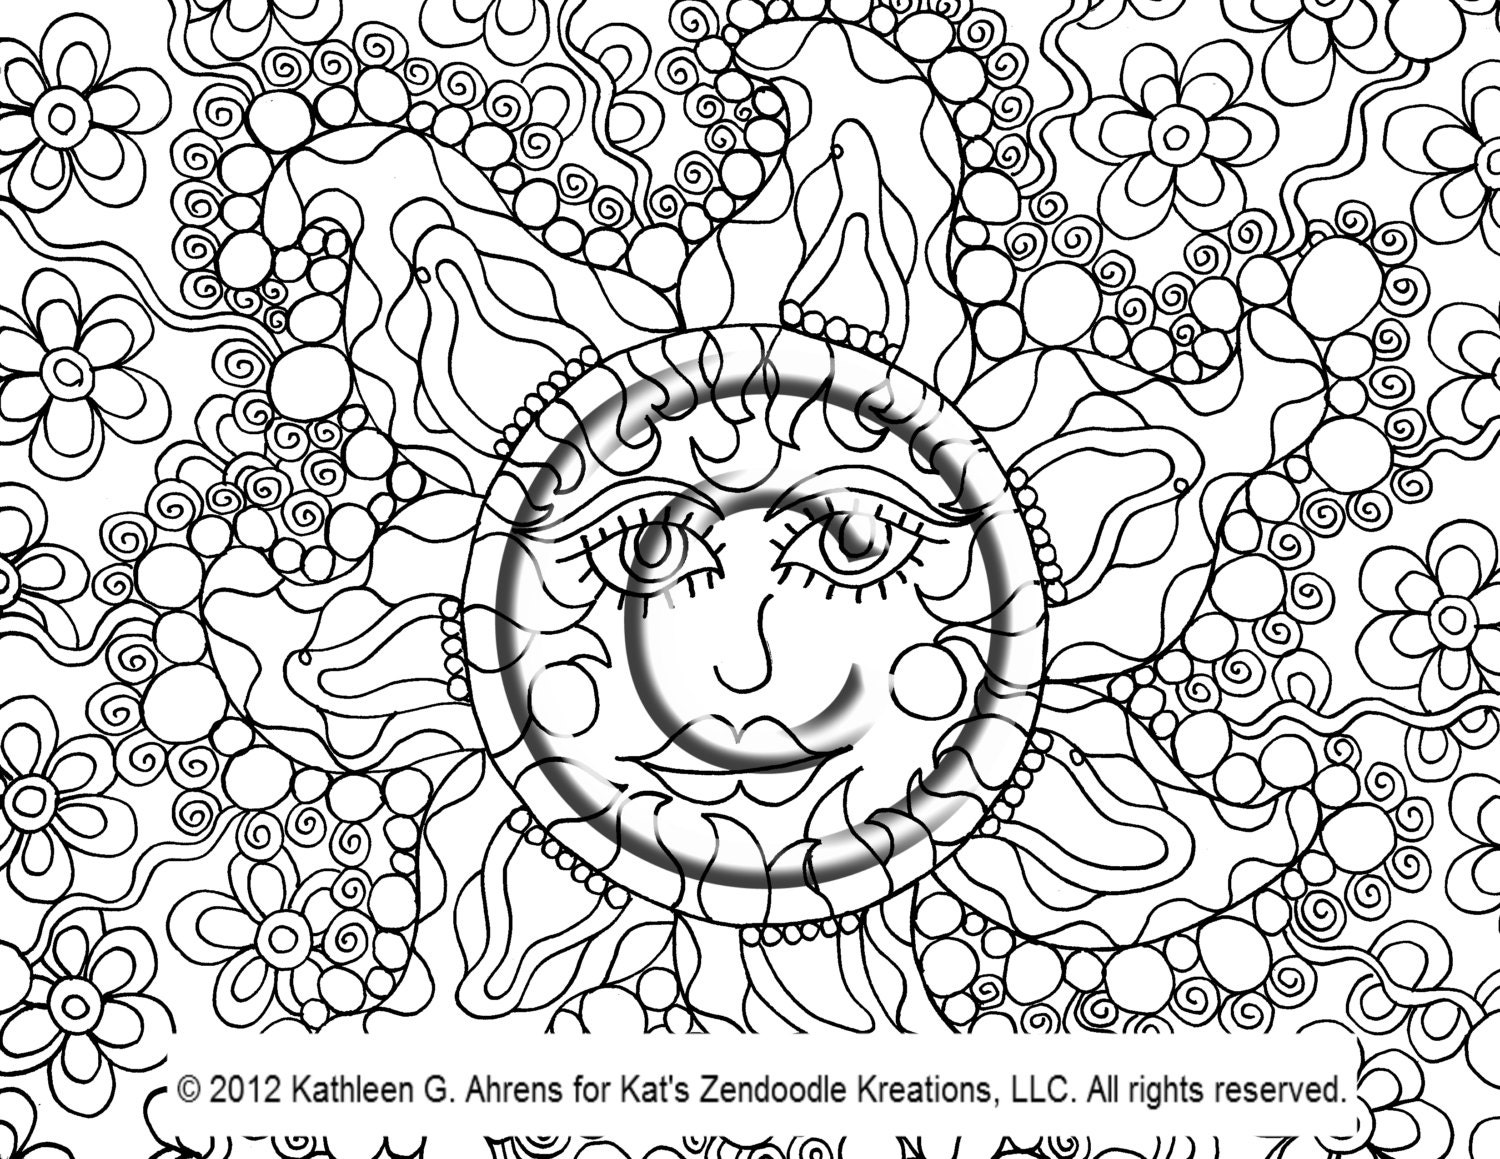 psychedelic sun coloring pages faxecolorhd - Psychedelic Hippie Coloring Pages